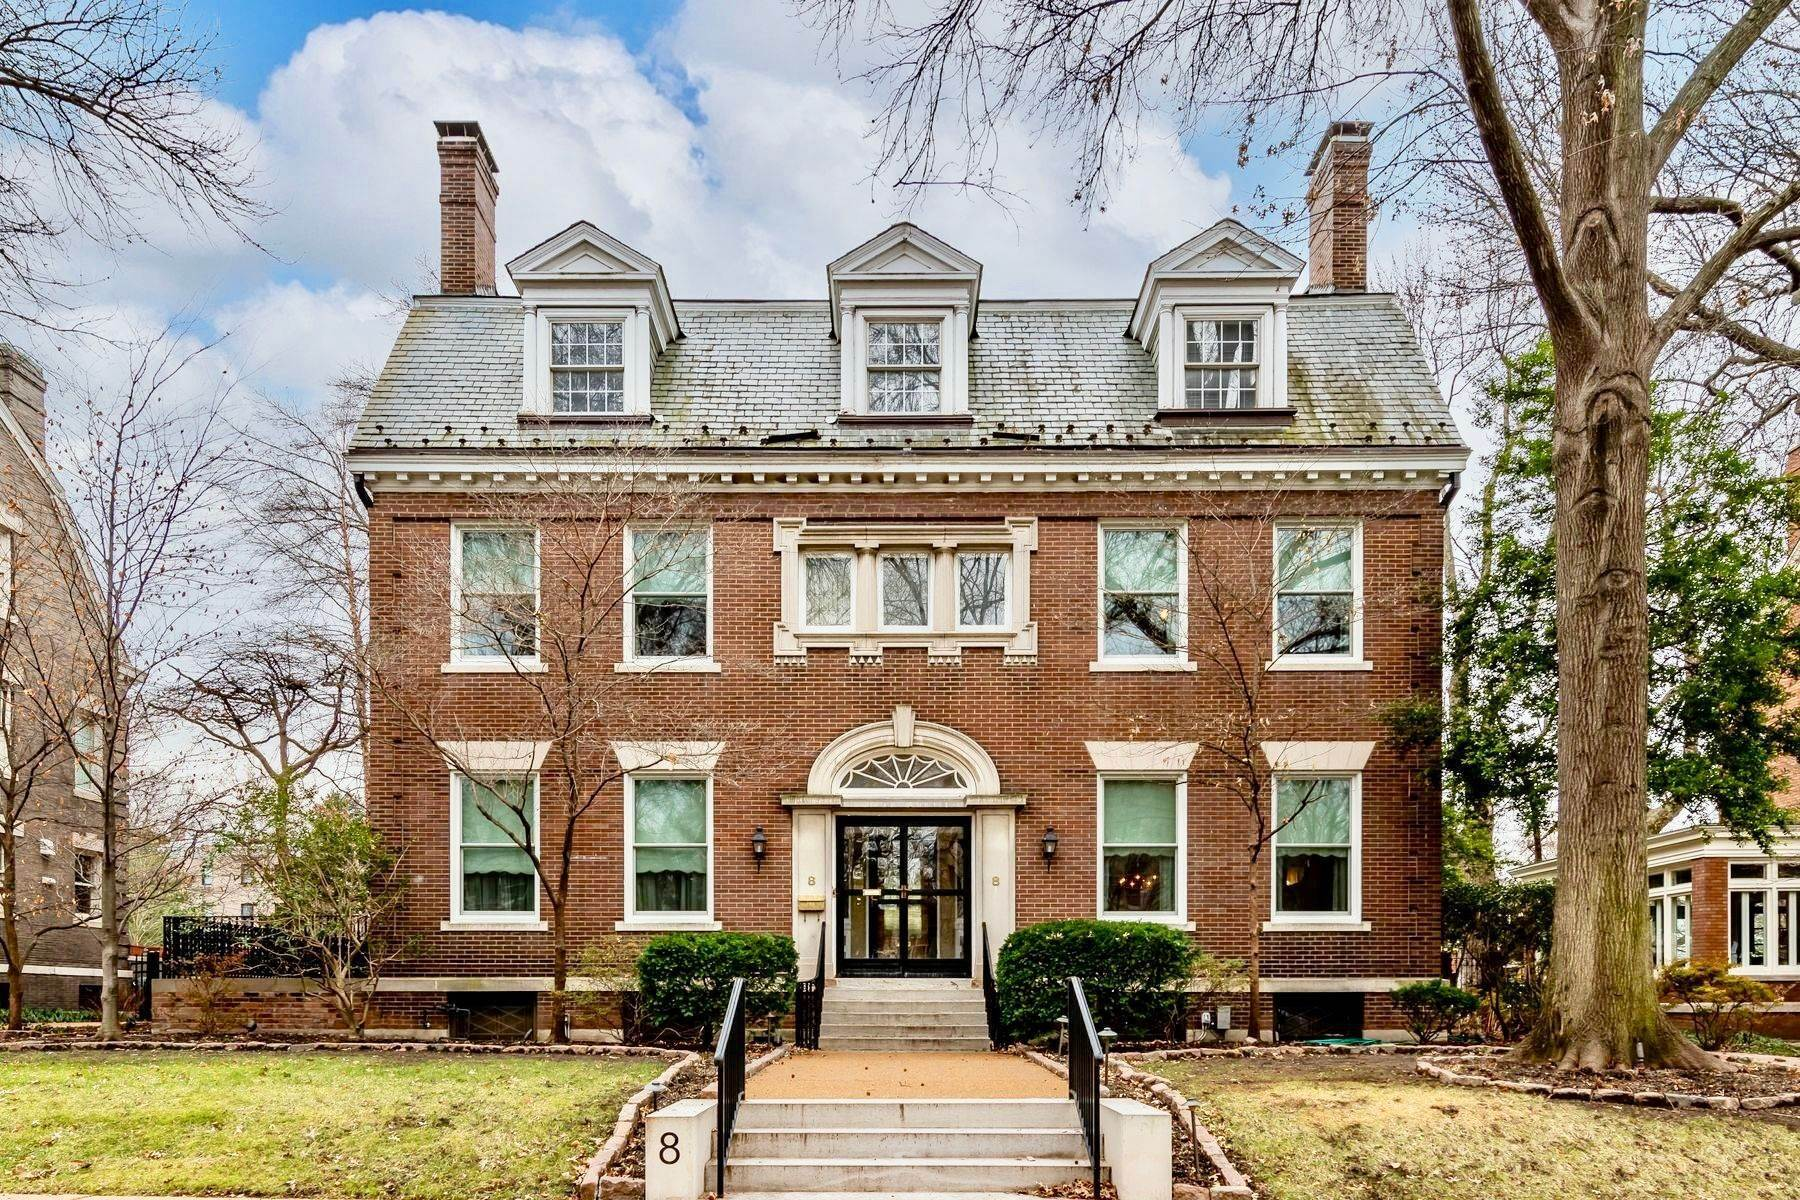 Property for Sale at Elegant Home In The Desirable CWE 8 Hortense Place St. Louis, Missouri 63108 United States